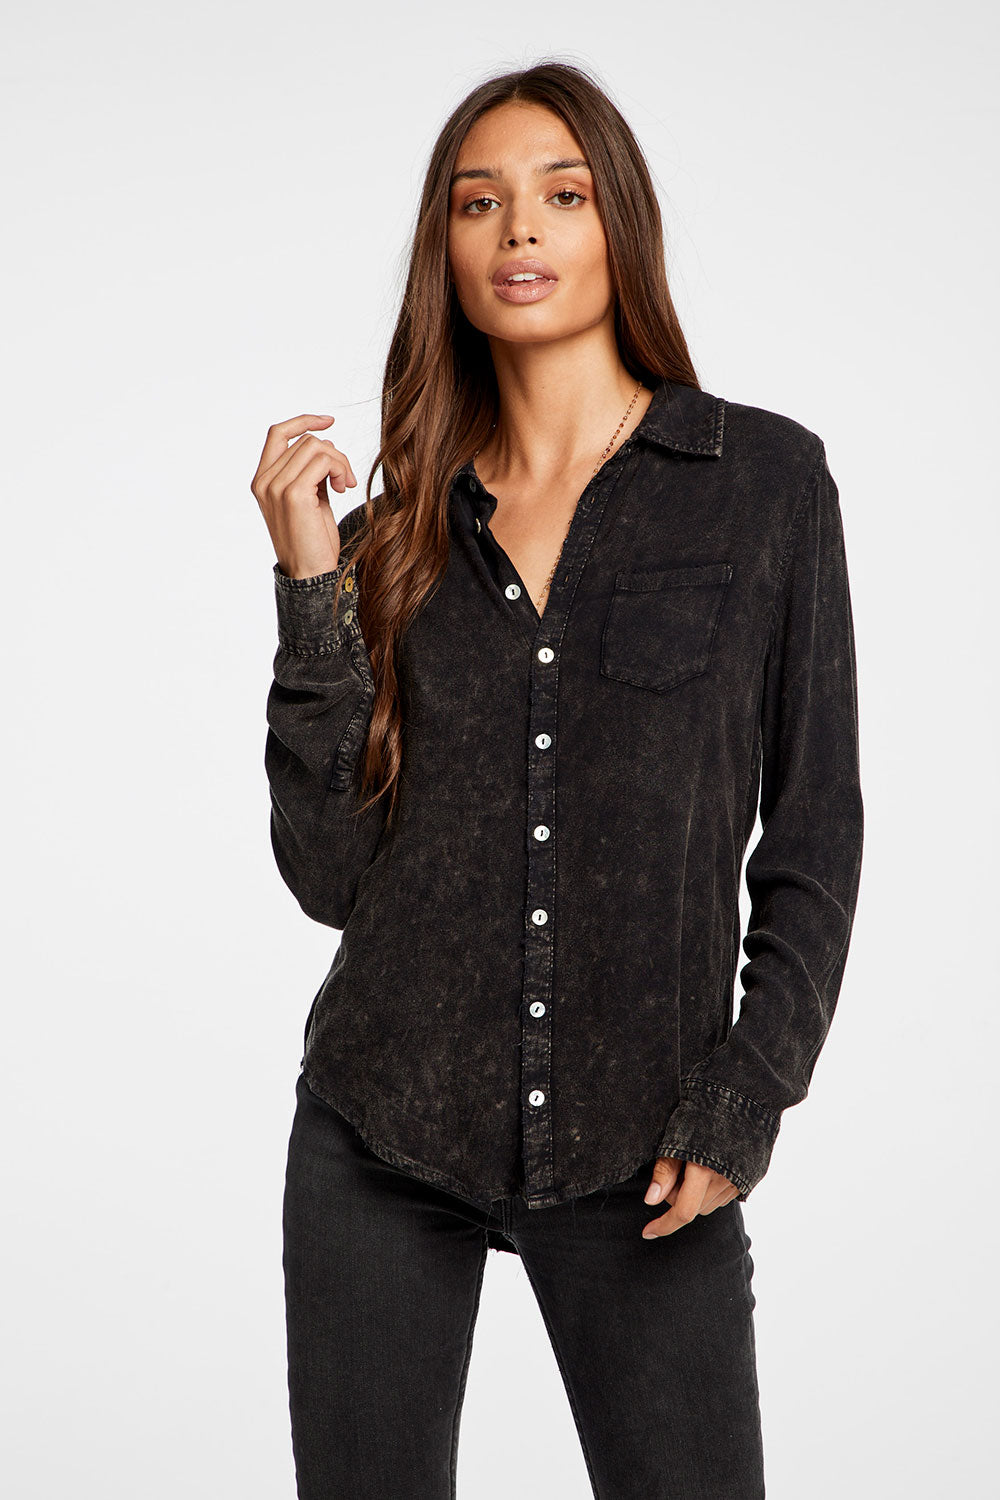 Heirloom Wovens Long Sleeve Pocket Button Down Shirt WOMENS chaserbrand4.myshopify.com